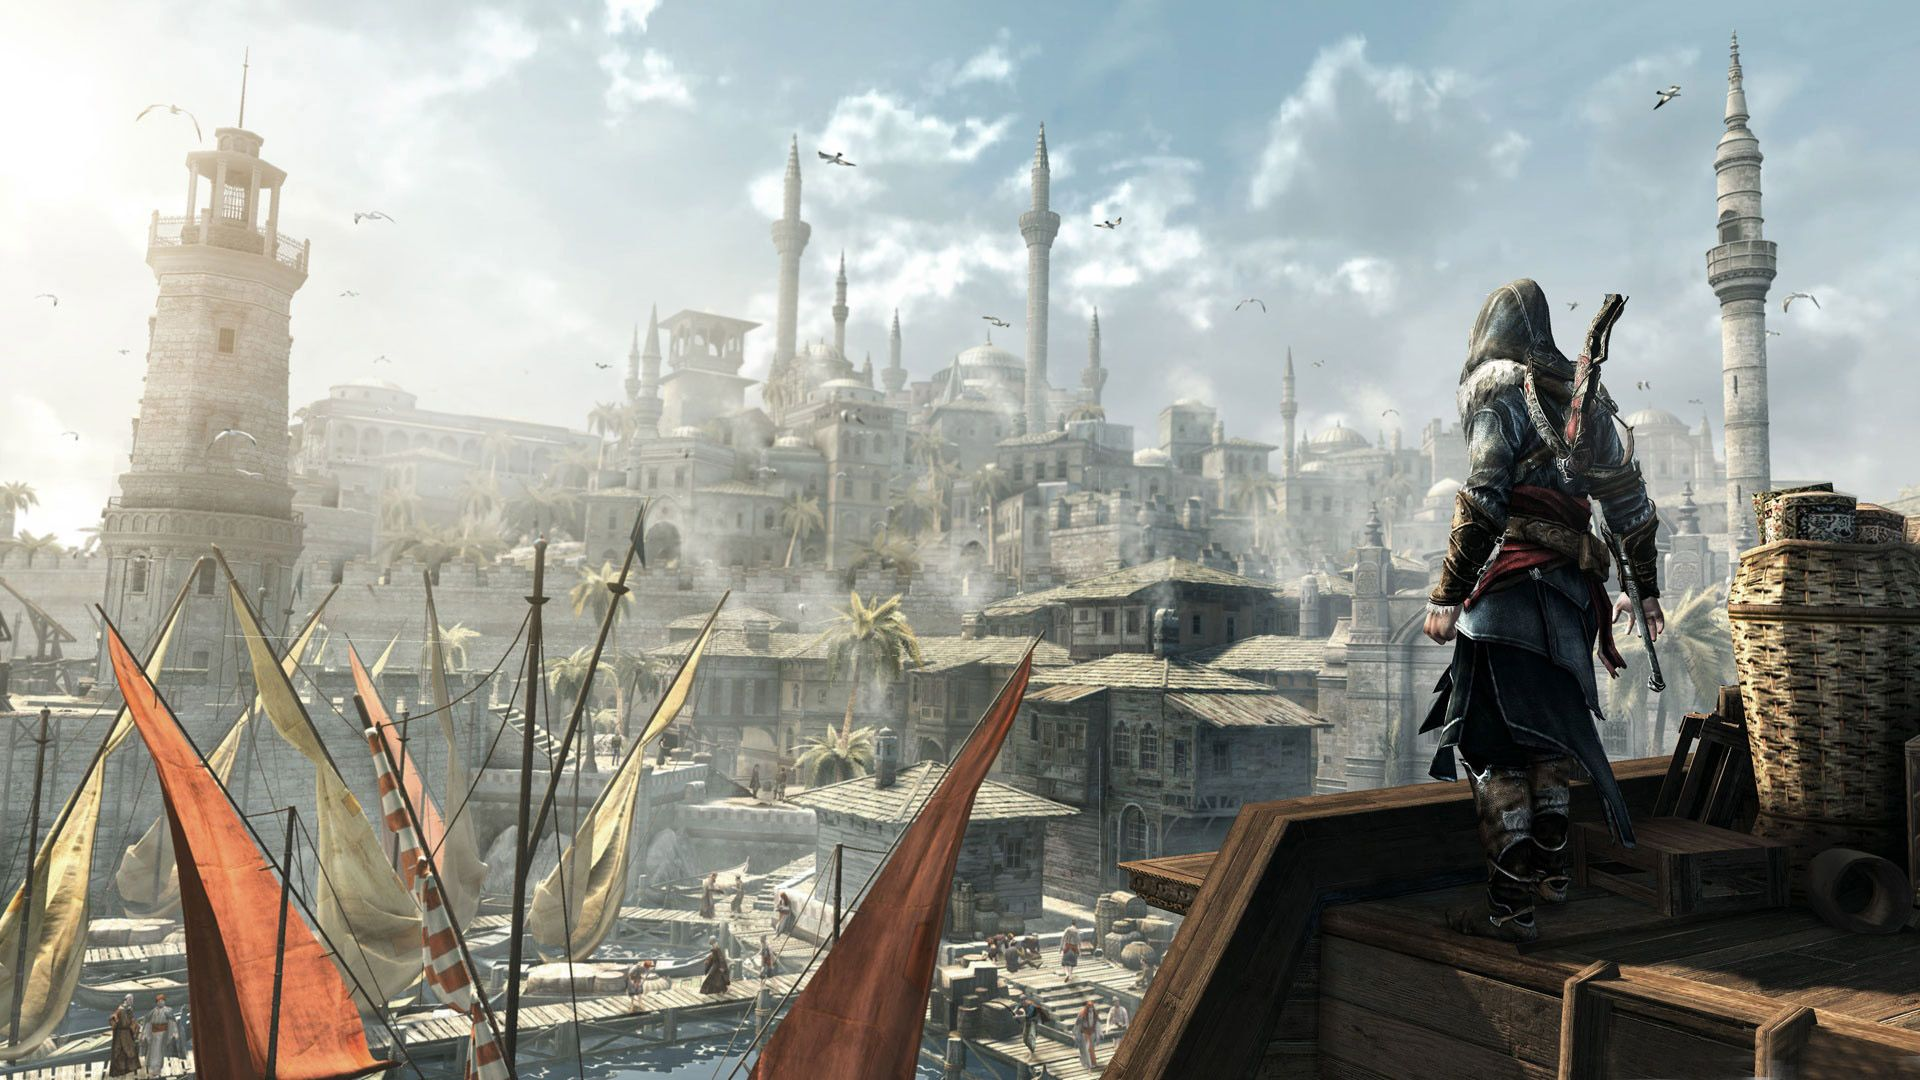 The Wallpapers Hd Assassins Creed